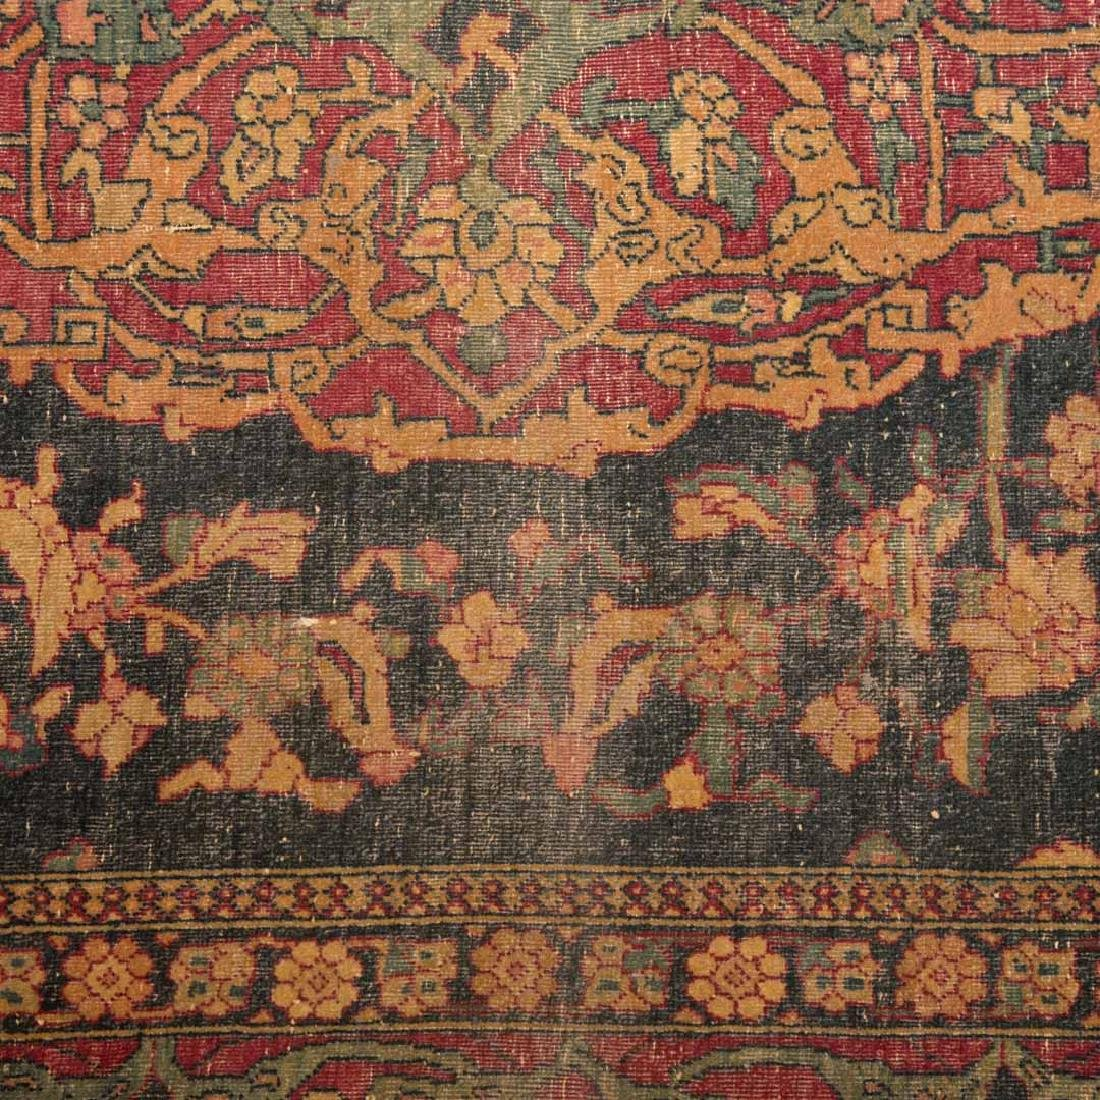 Antique Ispahan rug, approx. 4.7 x 7.2 - 4